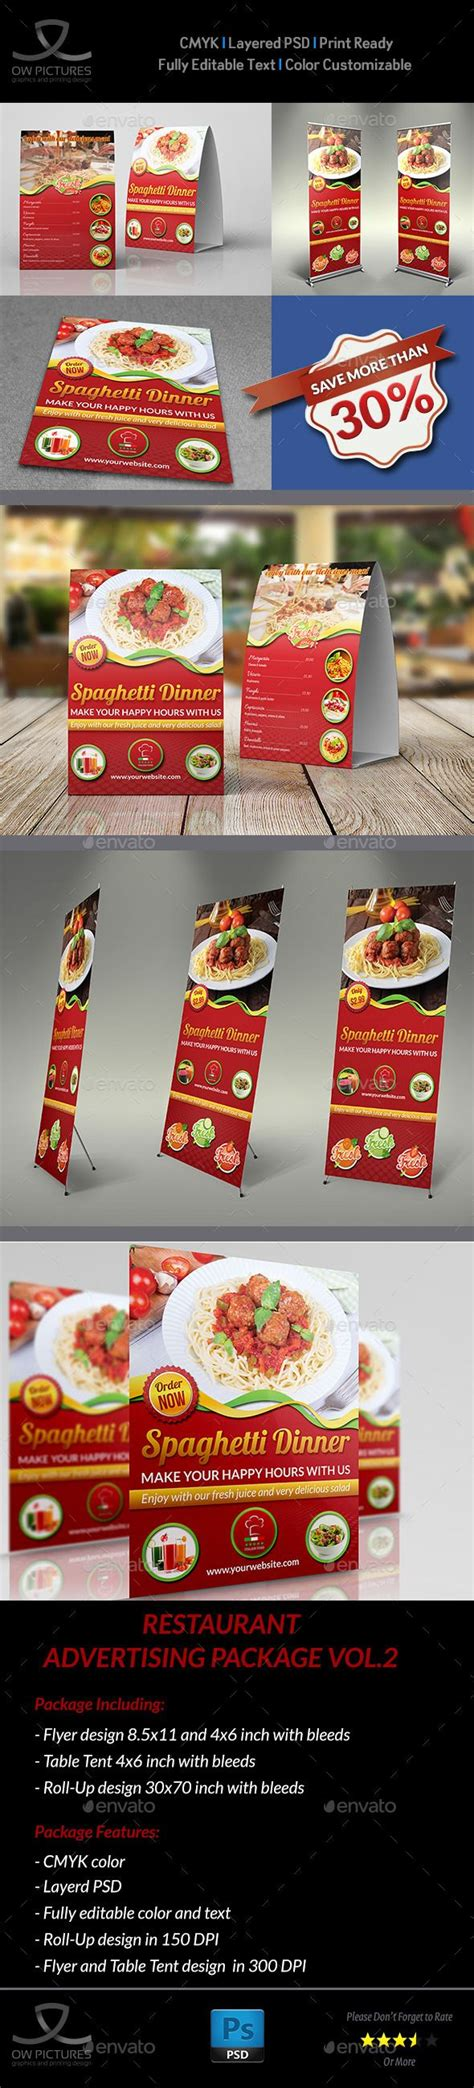 Best 25 Restaurant Advertising Ideas On Pinterest Advertising Funny Advertising And Kellogg S School Menu Template